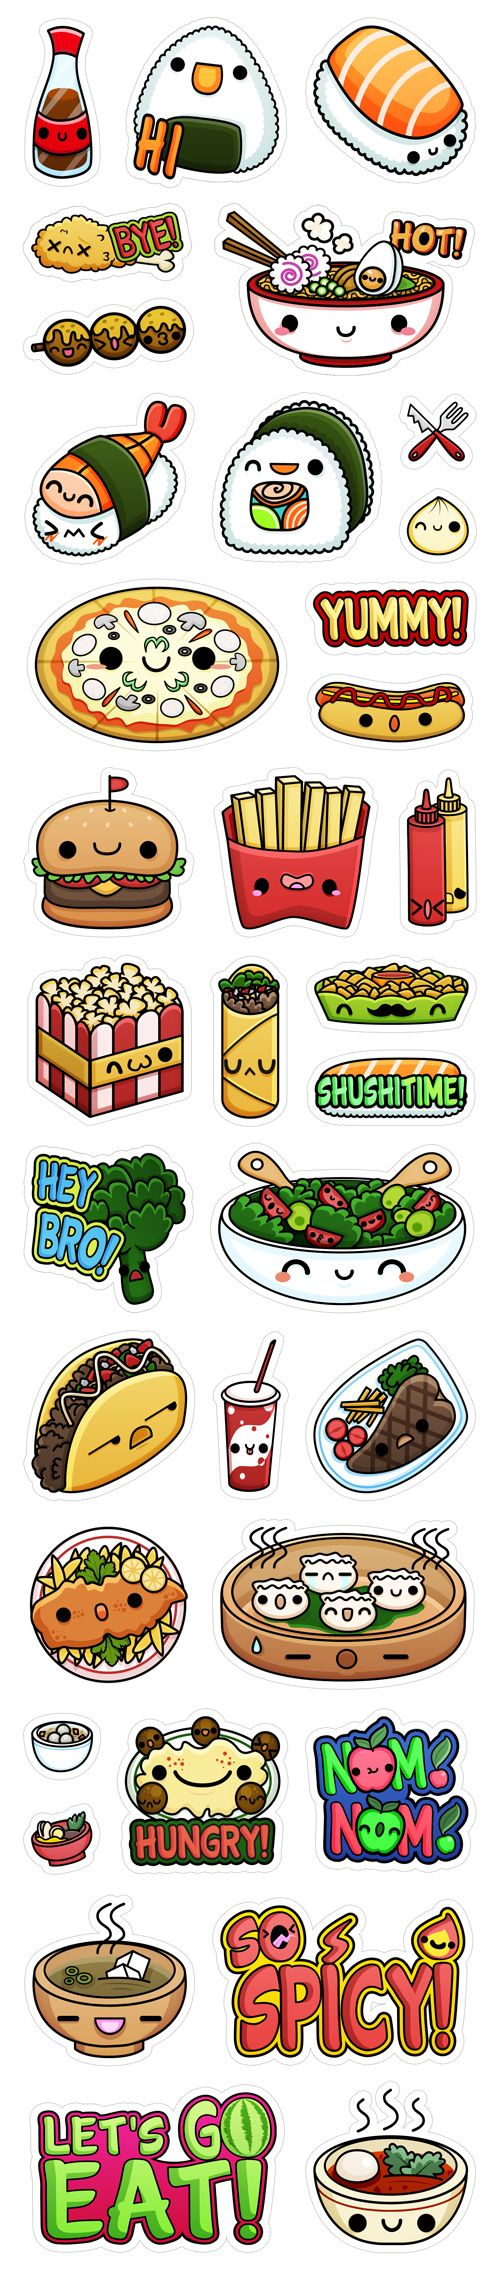 Viber's Food Stickers by Squid and Pig www.squidandpig.com